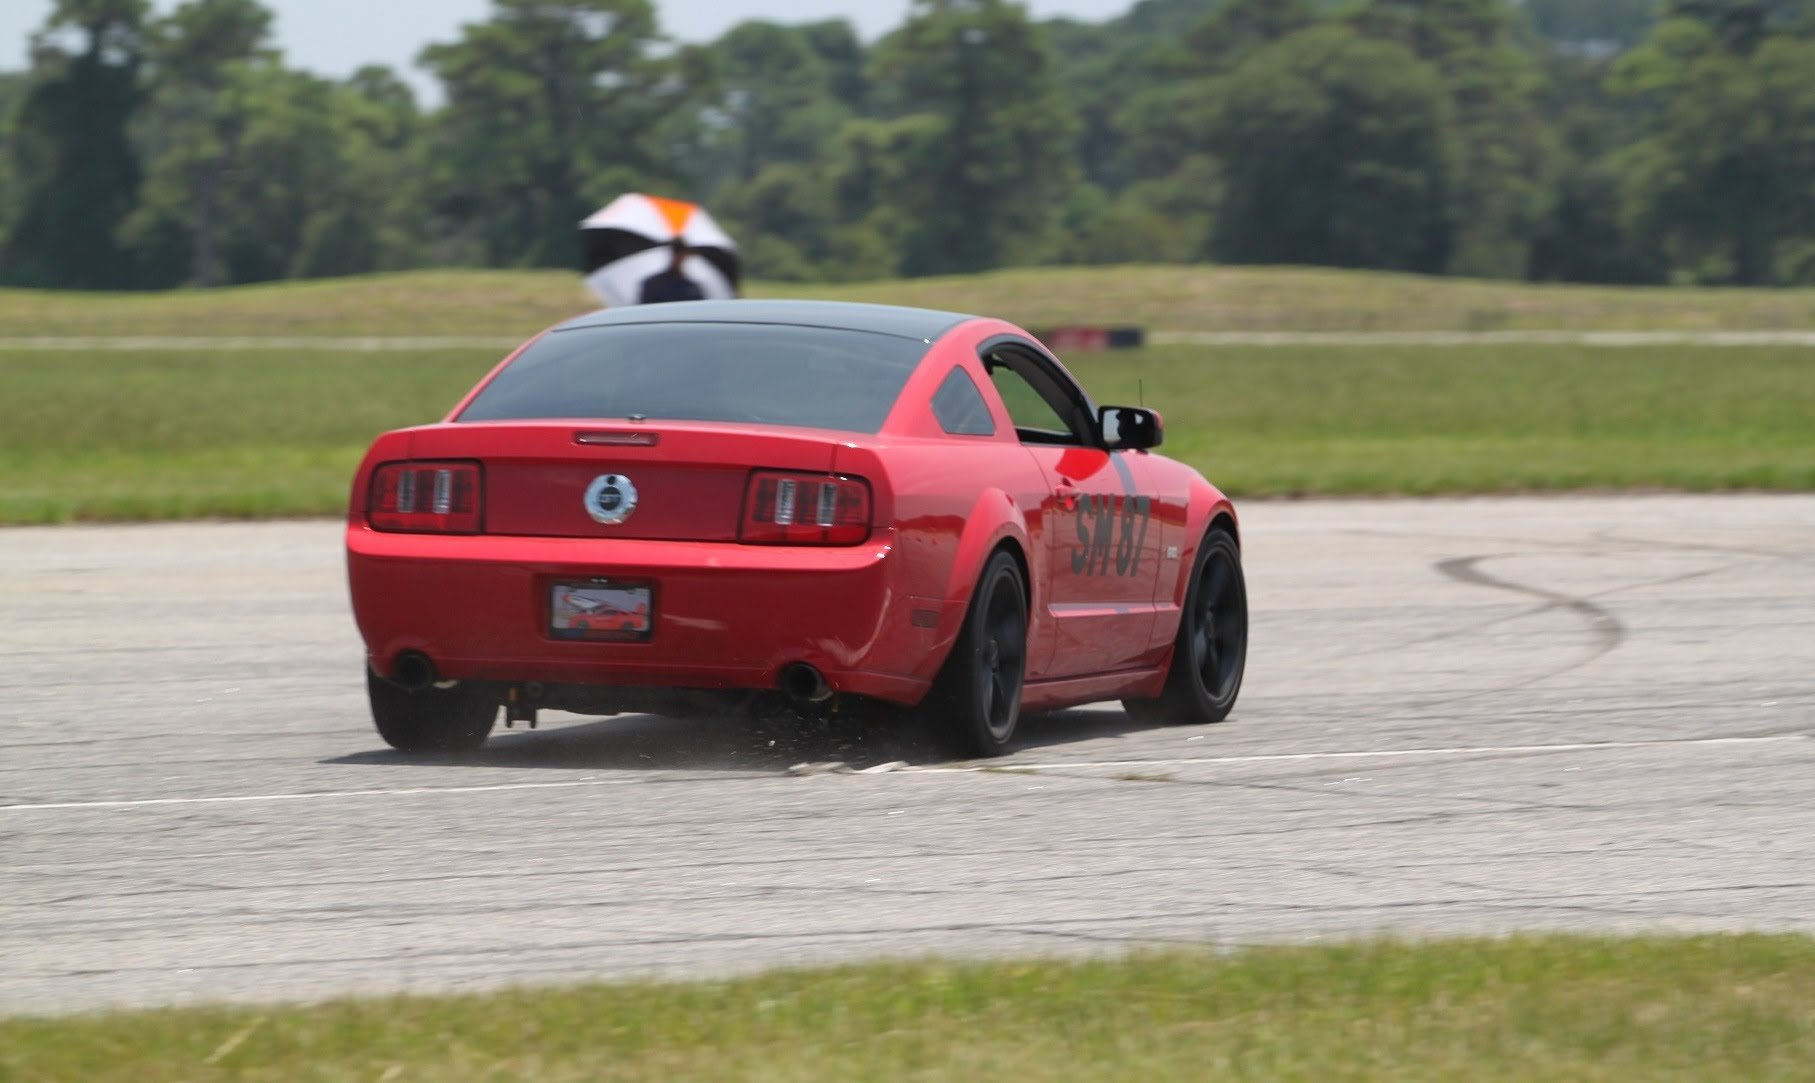 ForumFix: Suspension for Autocross